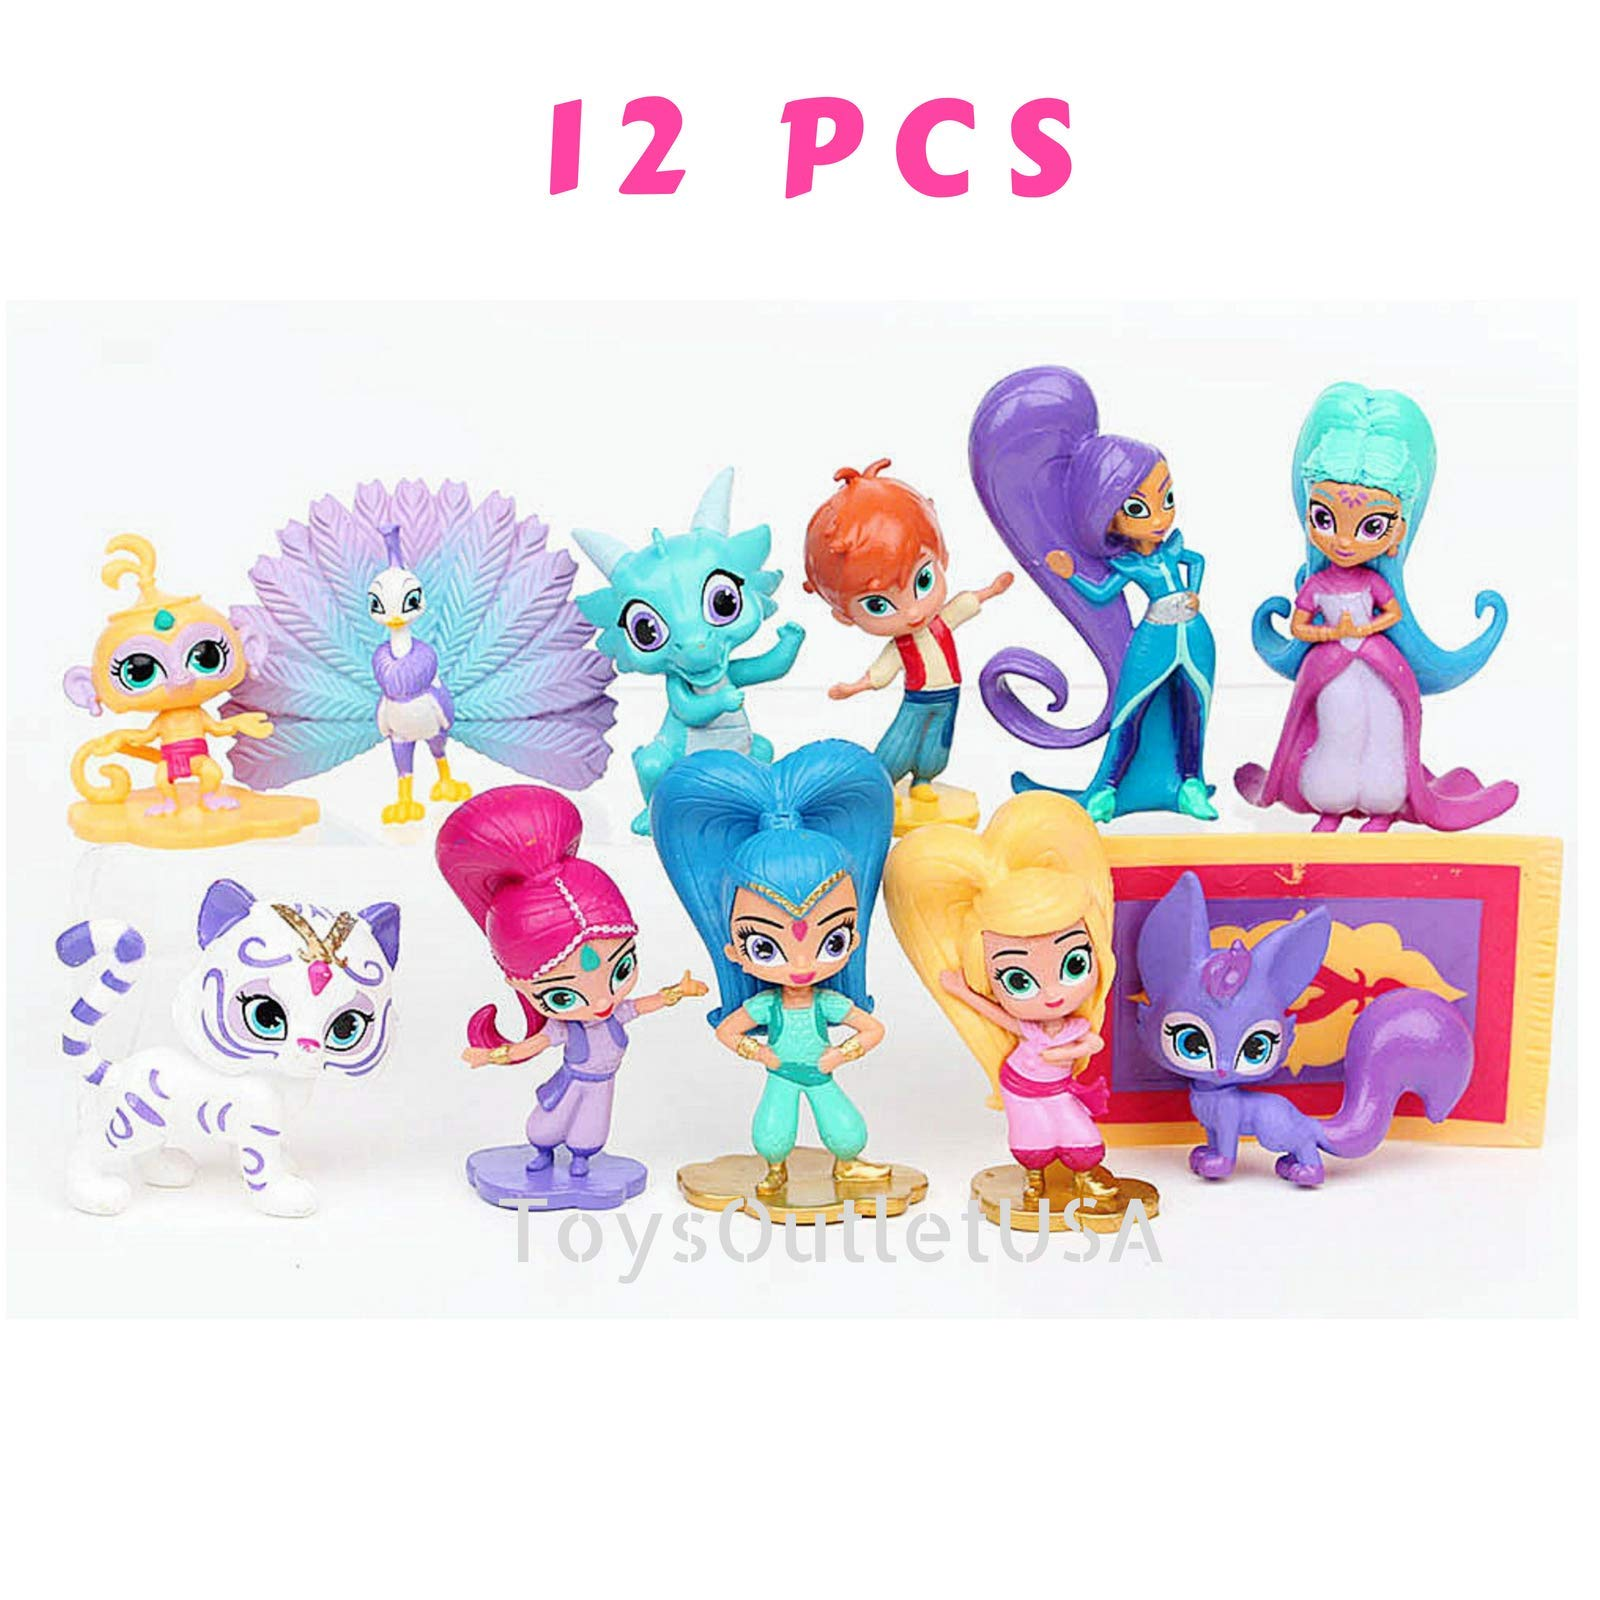 Shimmer and Shine Figure Set 12pcs Cake Toppers Party Supplies Birthday Decorations Genies Shimmer, Shine, Zac,Leah,Tala, Kaz and more Toys